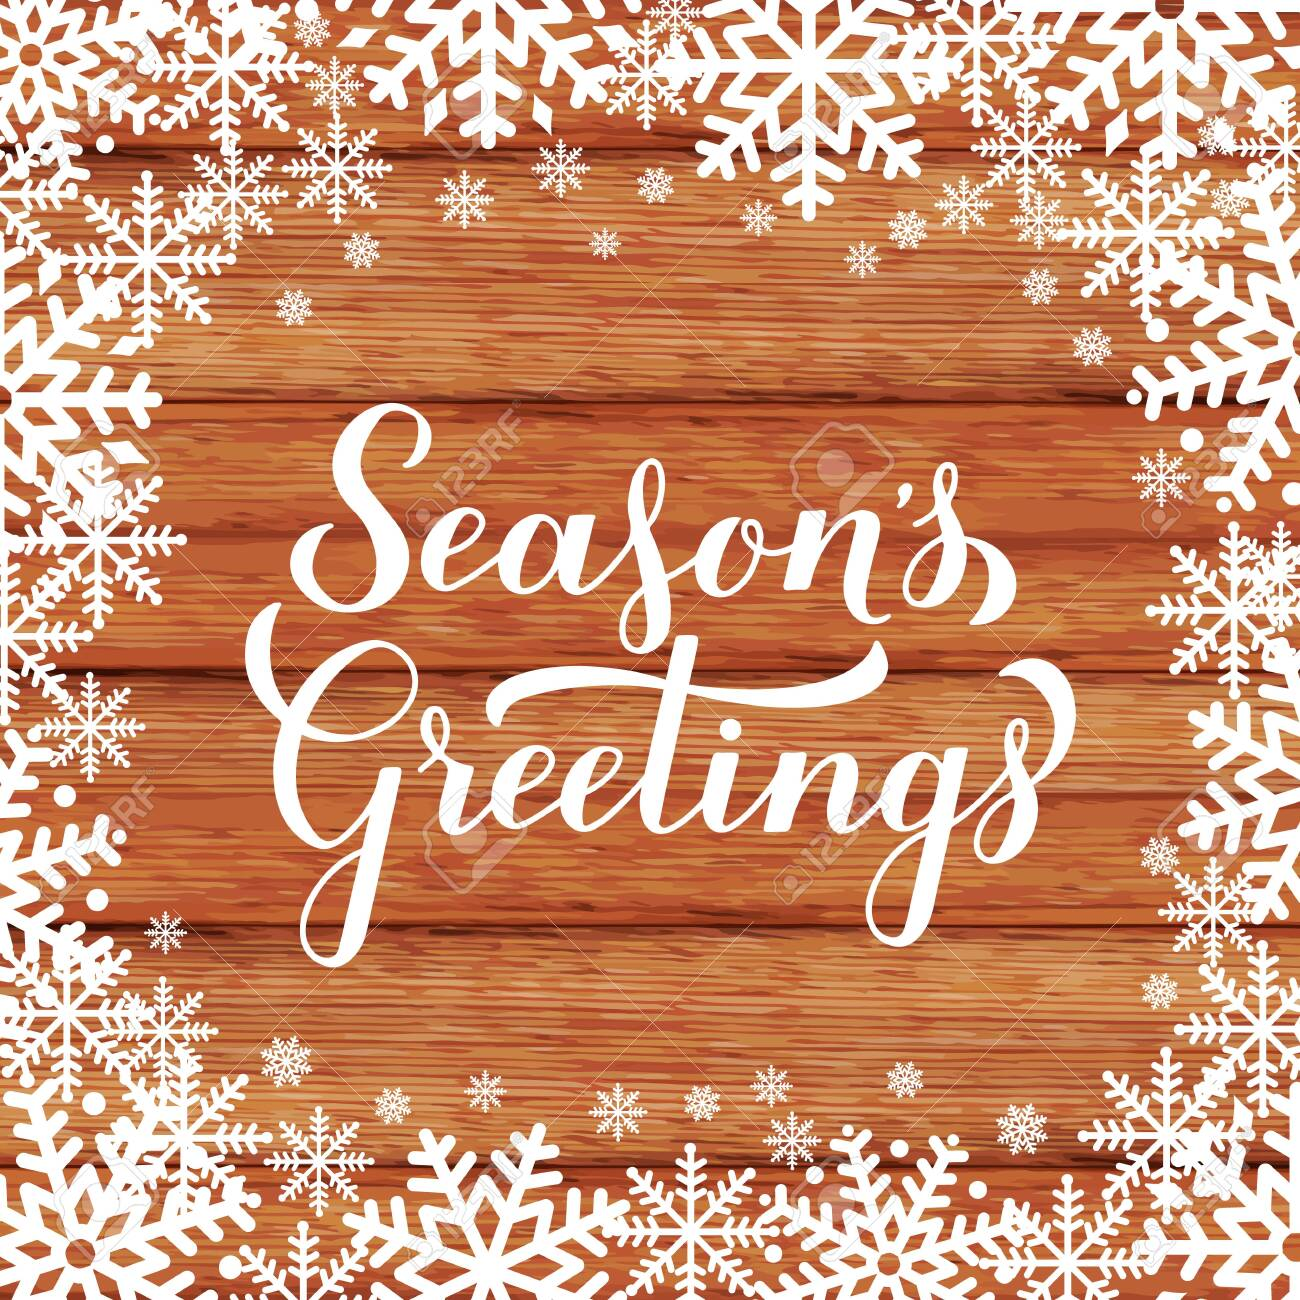 Season s Greetings calligraphy hand lettering on wood background with snowflakes. Merry Christmas and Happy New Year typography poster. Vector template for greeting card, banner, flyer, tag, etc. - 135537502